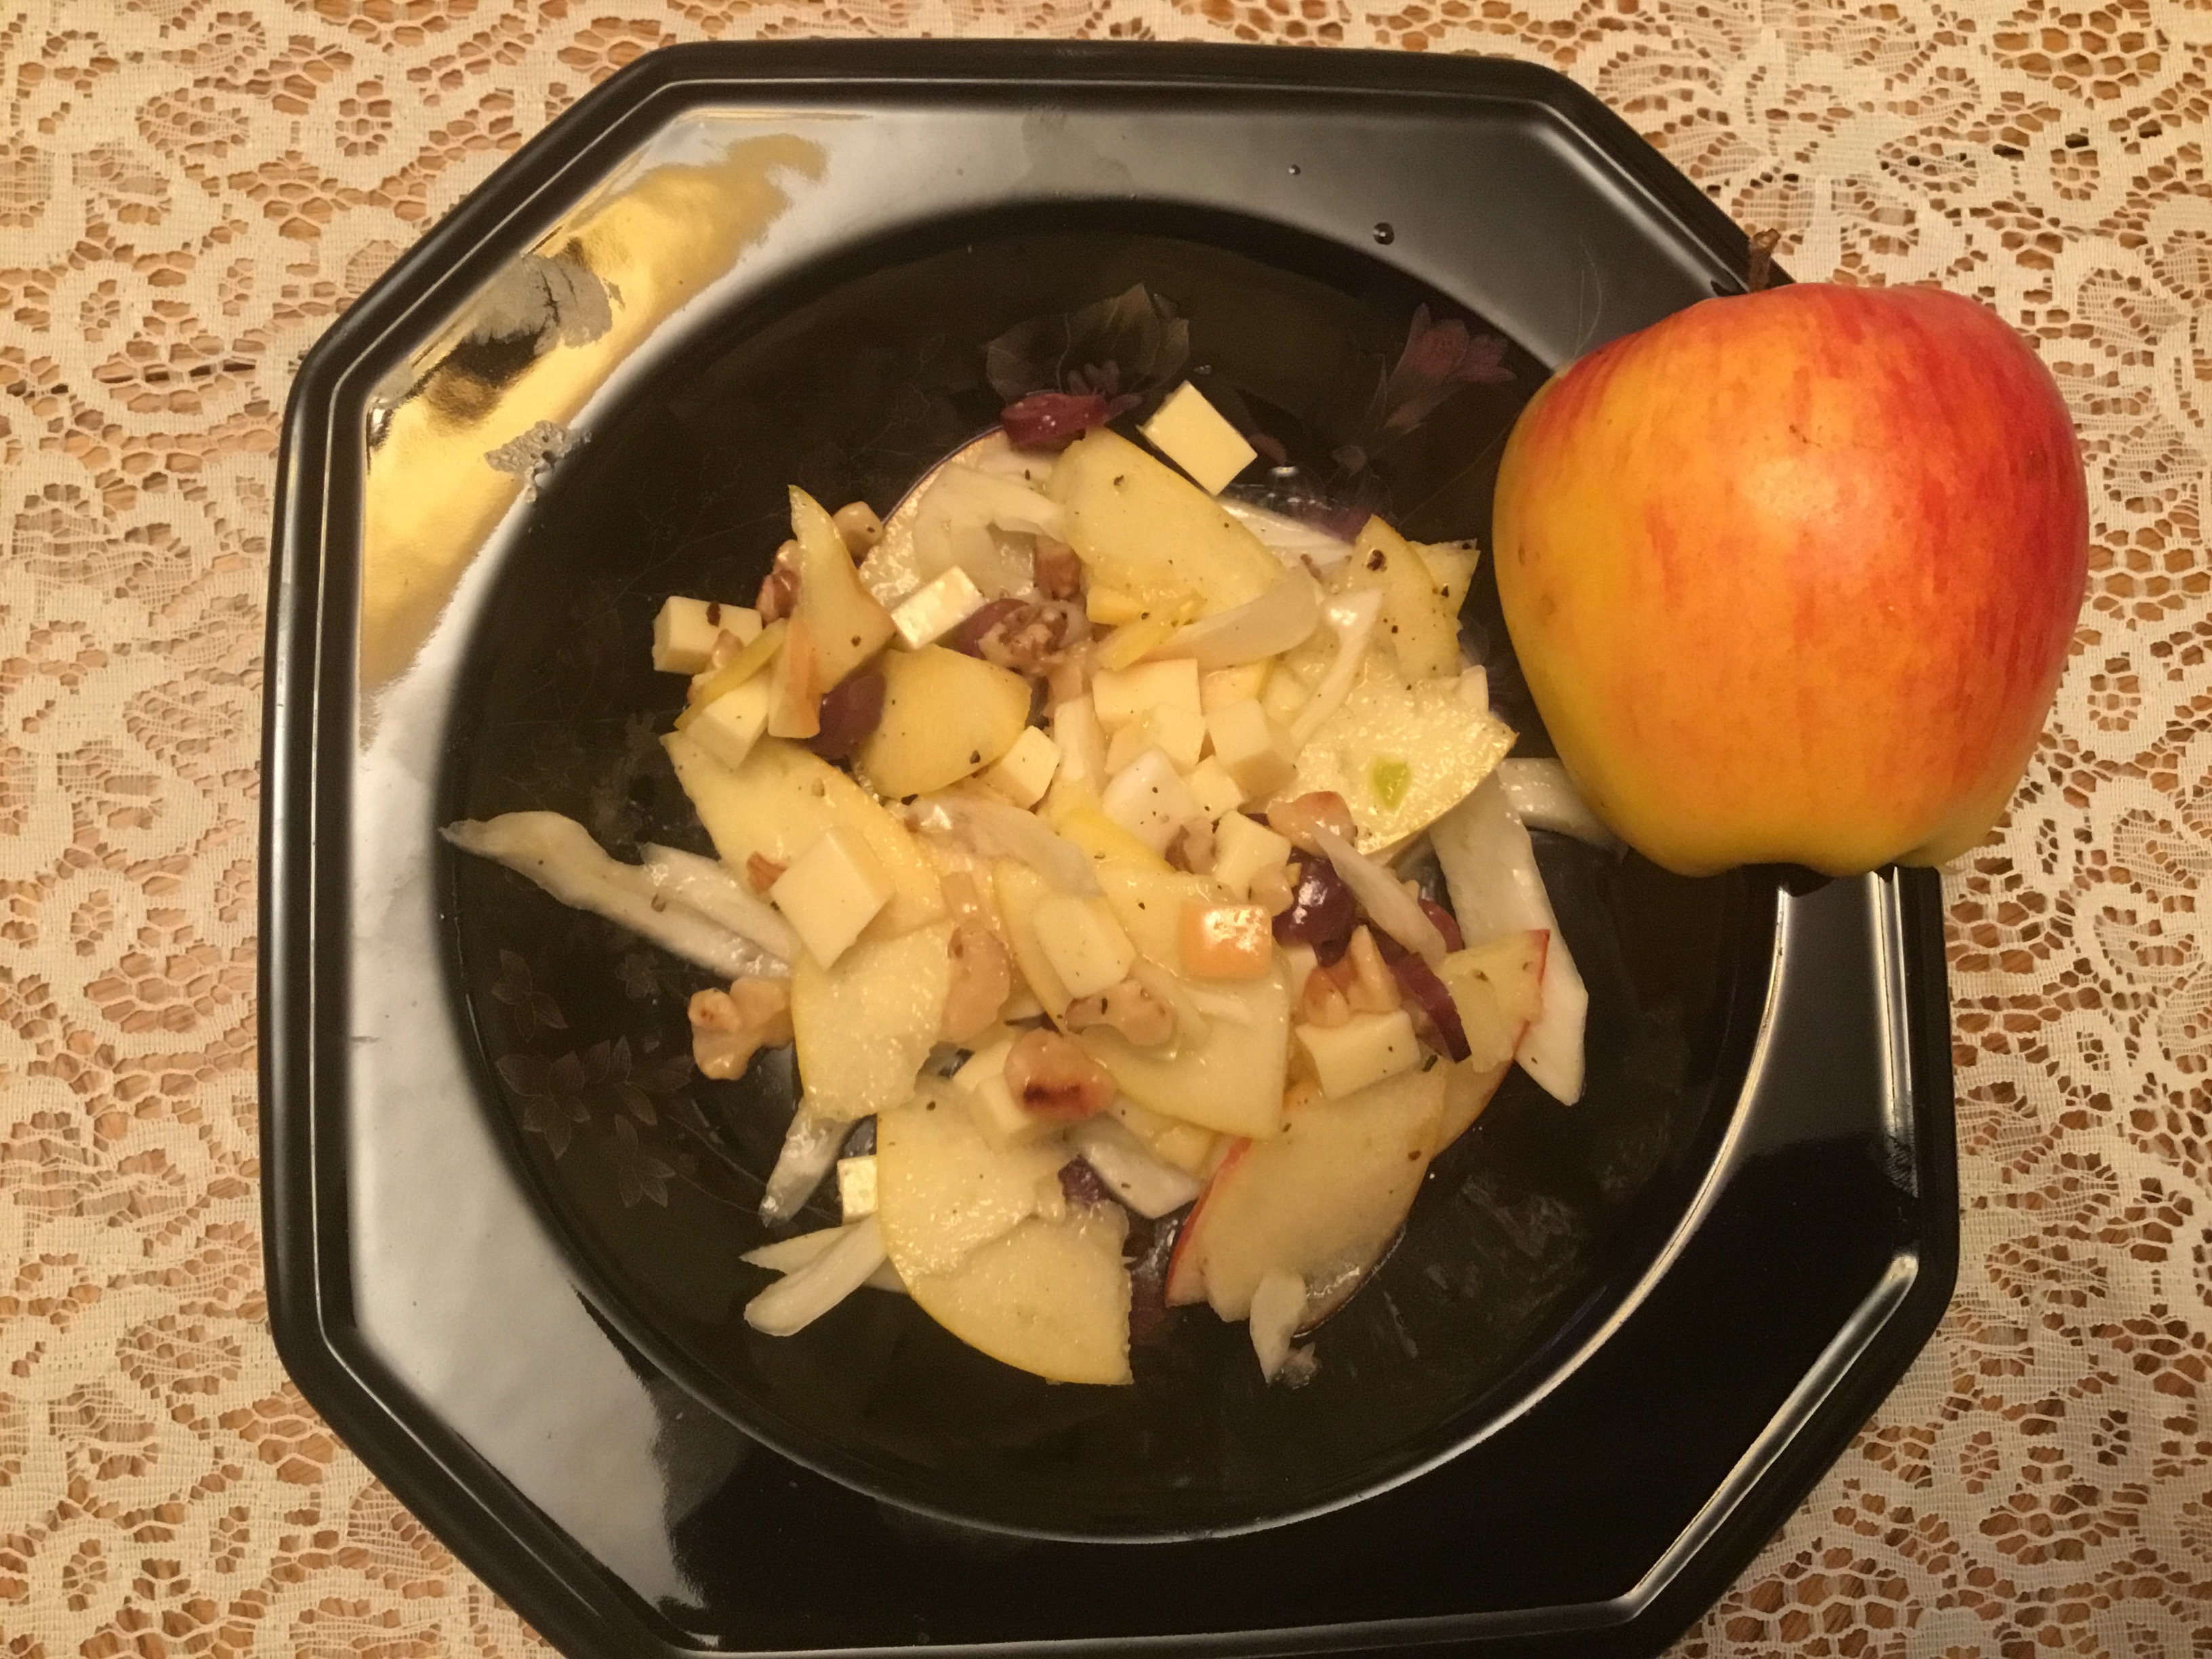 ambrosia and fennel salad with walnuts and olives